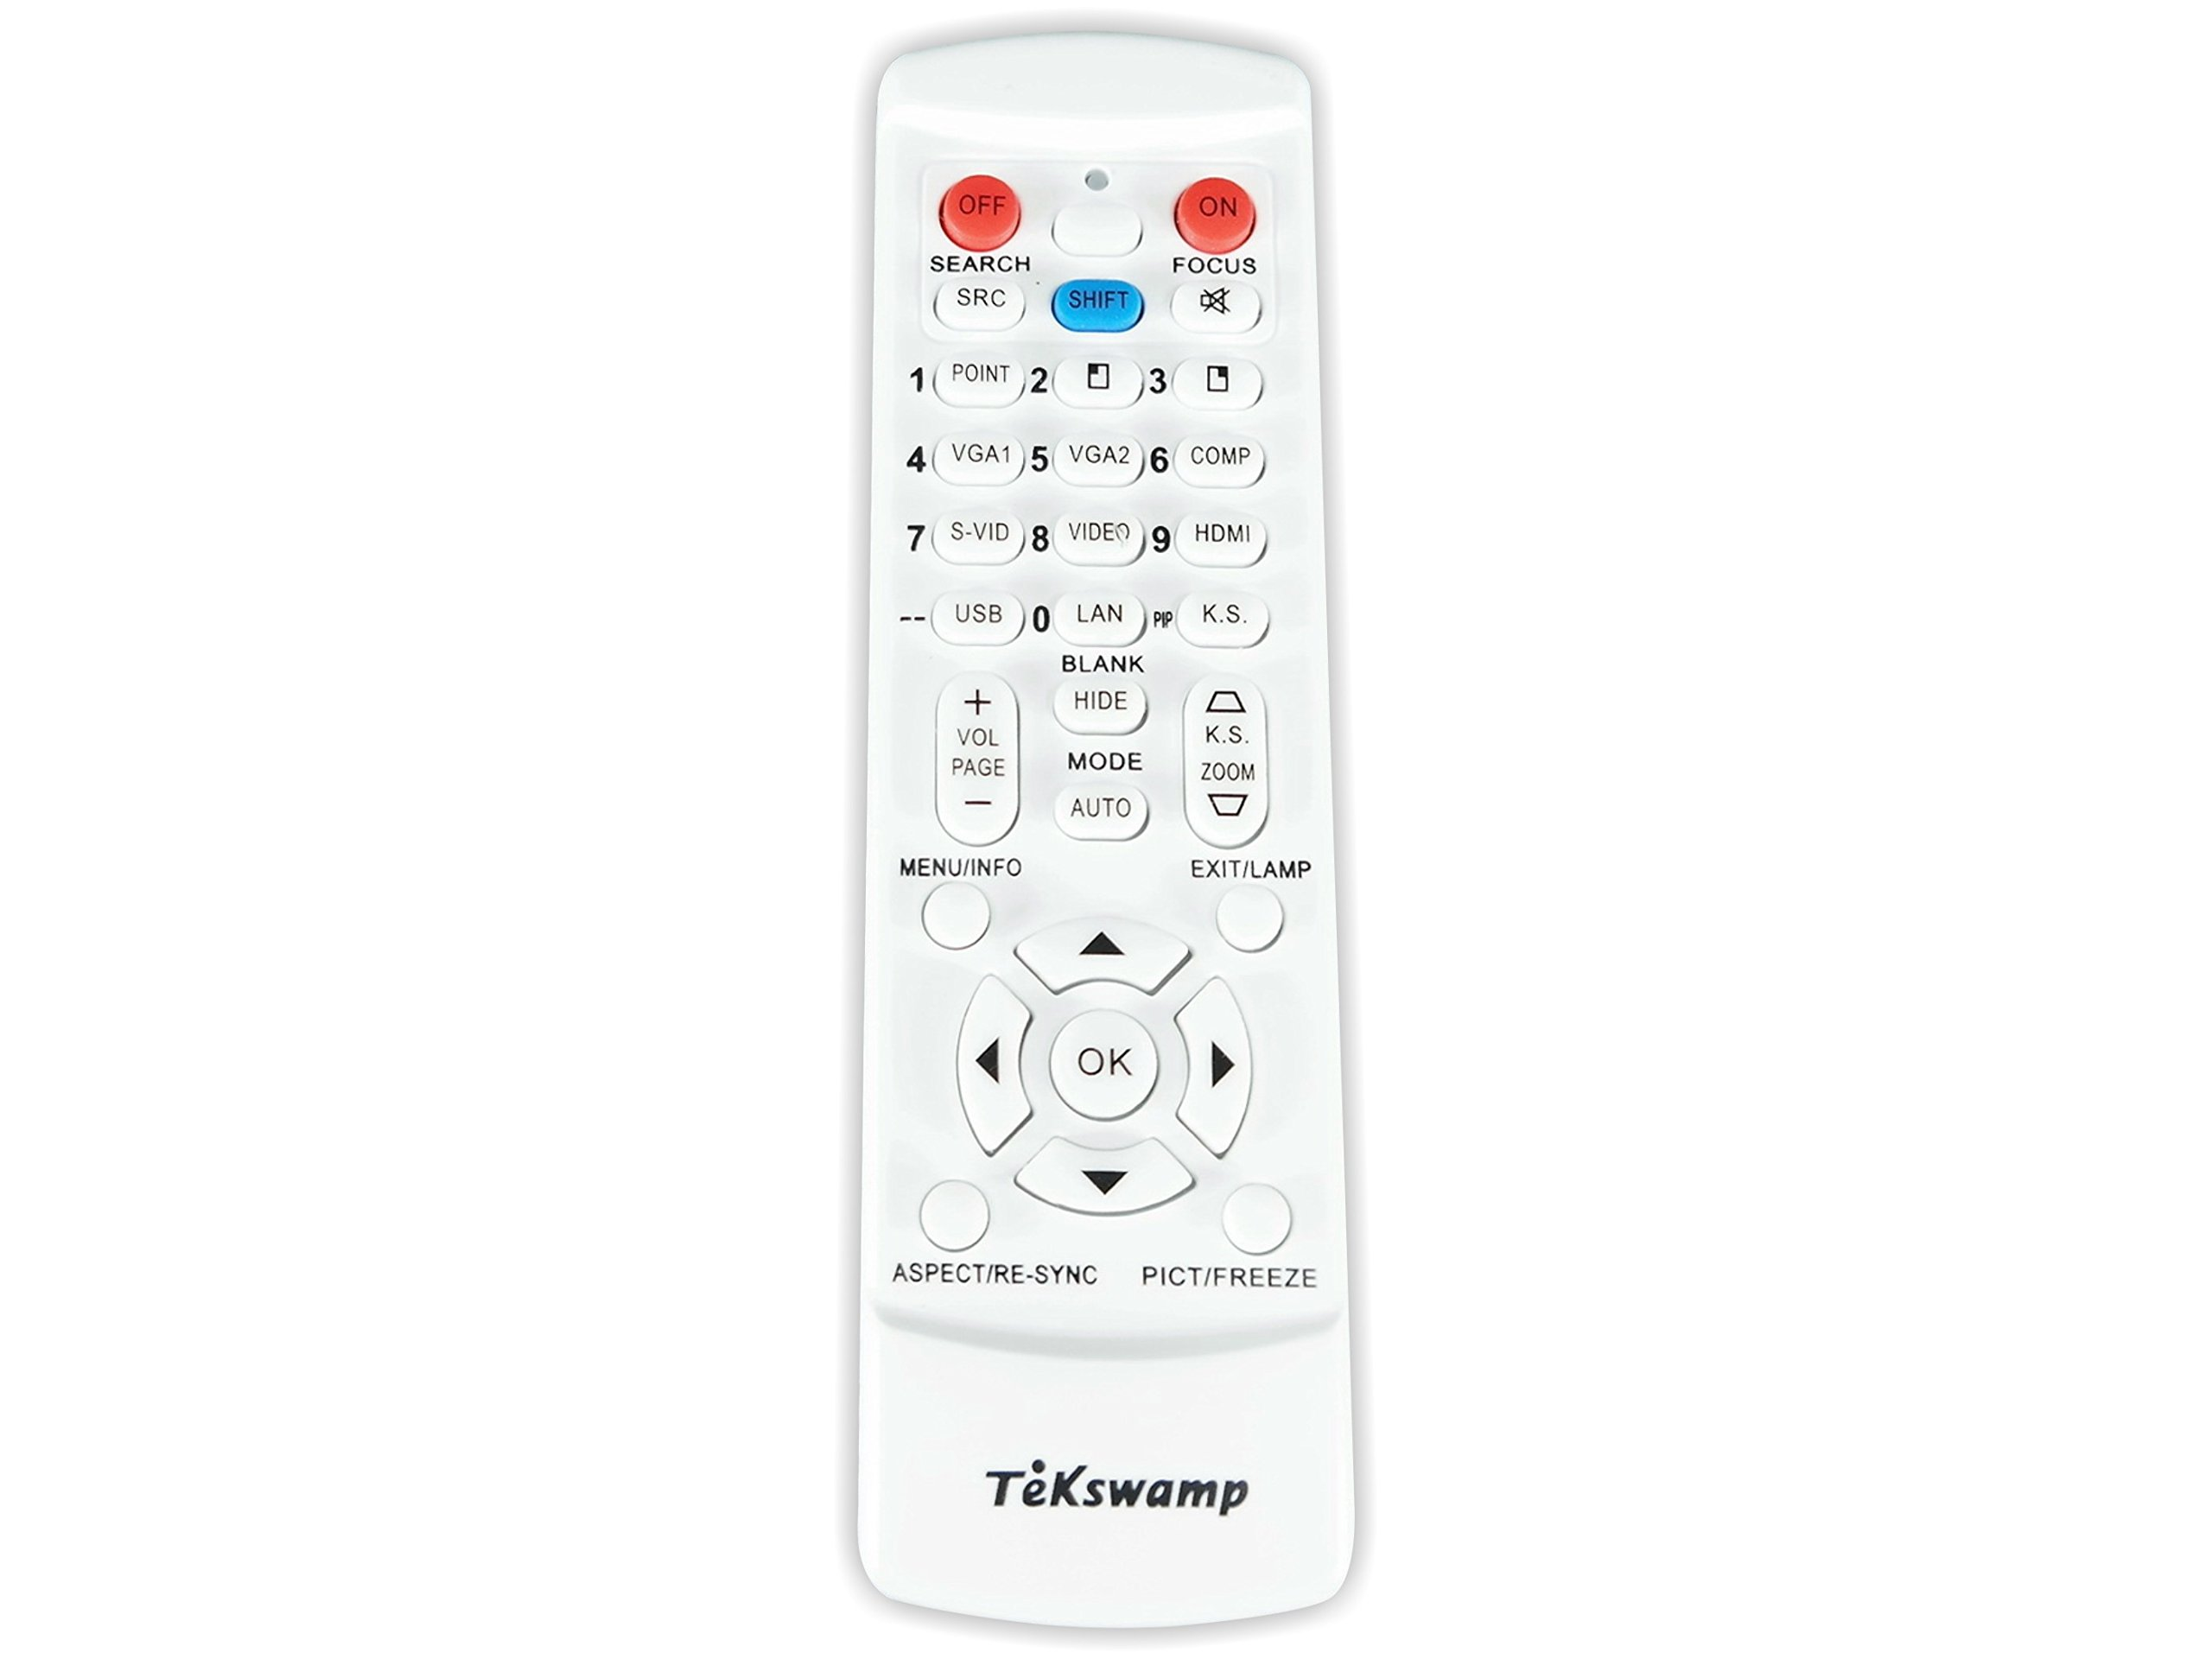 Barco RLM-W8 TeKswamp Video Projector Remote Control (White) by Tekswamp (Image #5)